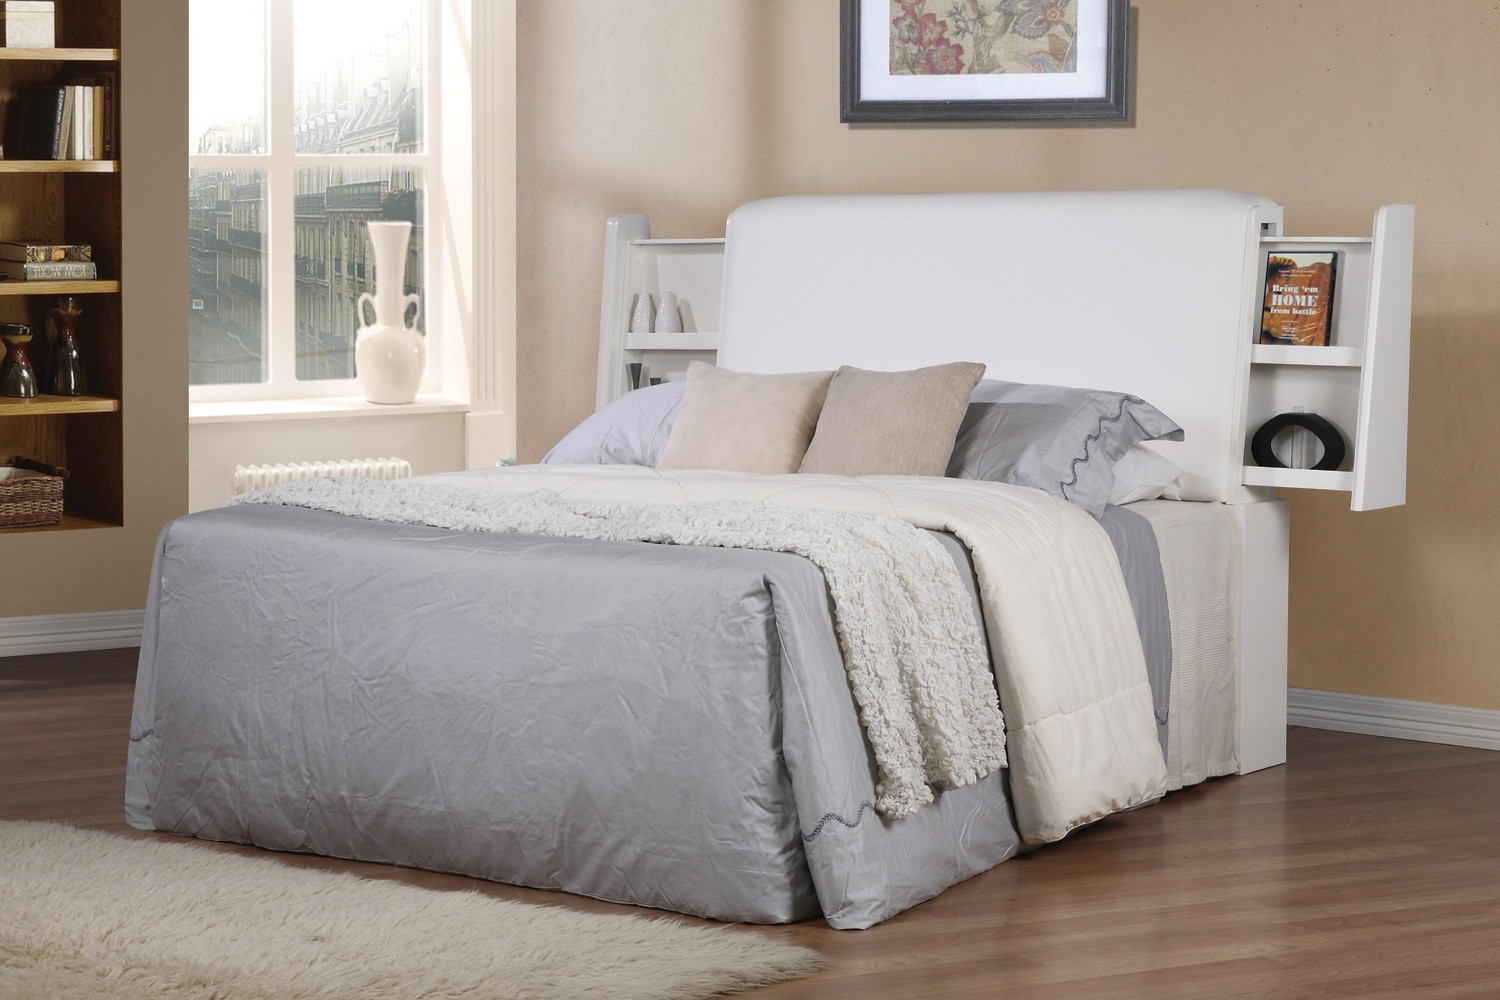 solid white upholstered headboards matched with gray bedding on wooden  floor with white rug matched with. Bedroom  Beige Upholstered Headboards With White Bedding On Beige